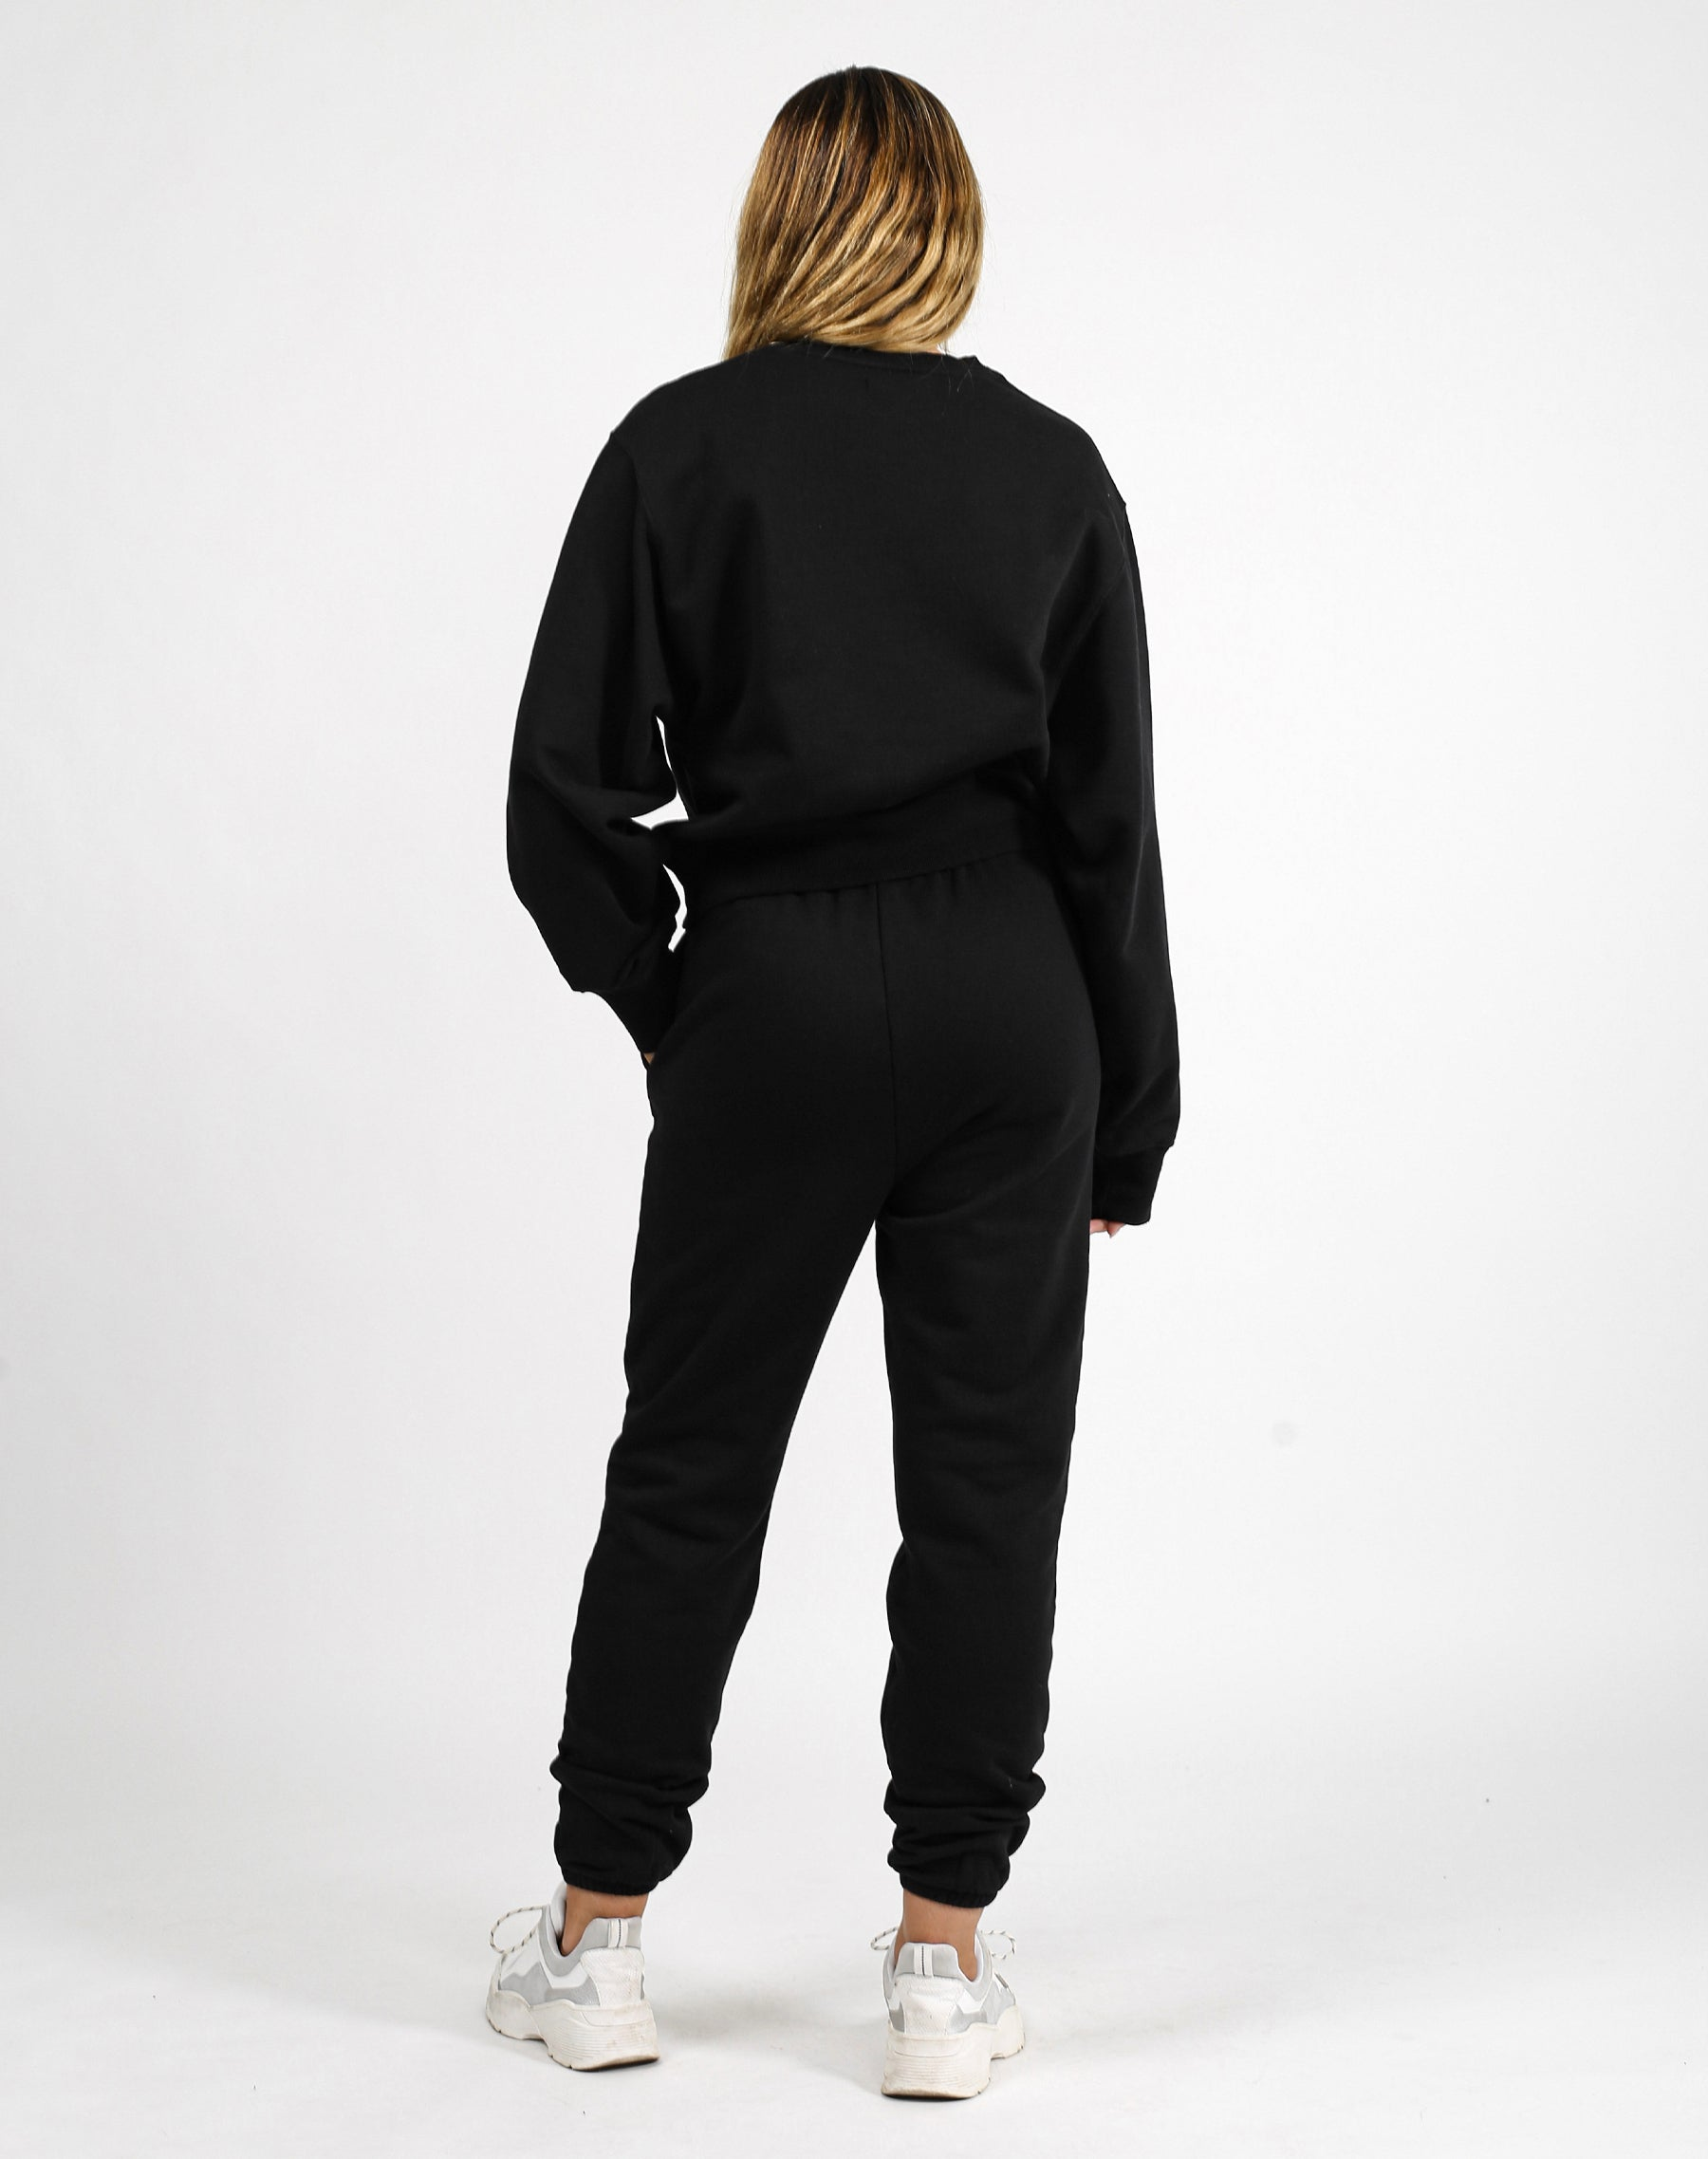 This is a photo of the back of a model wearing the Babes Social Club Best Friend Jogger in Black by Brunette the Label.